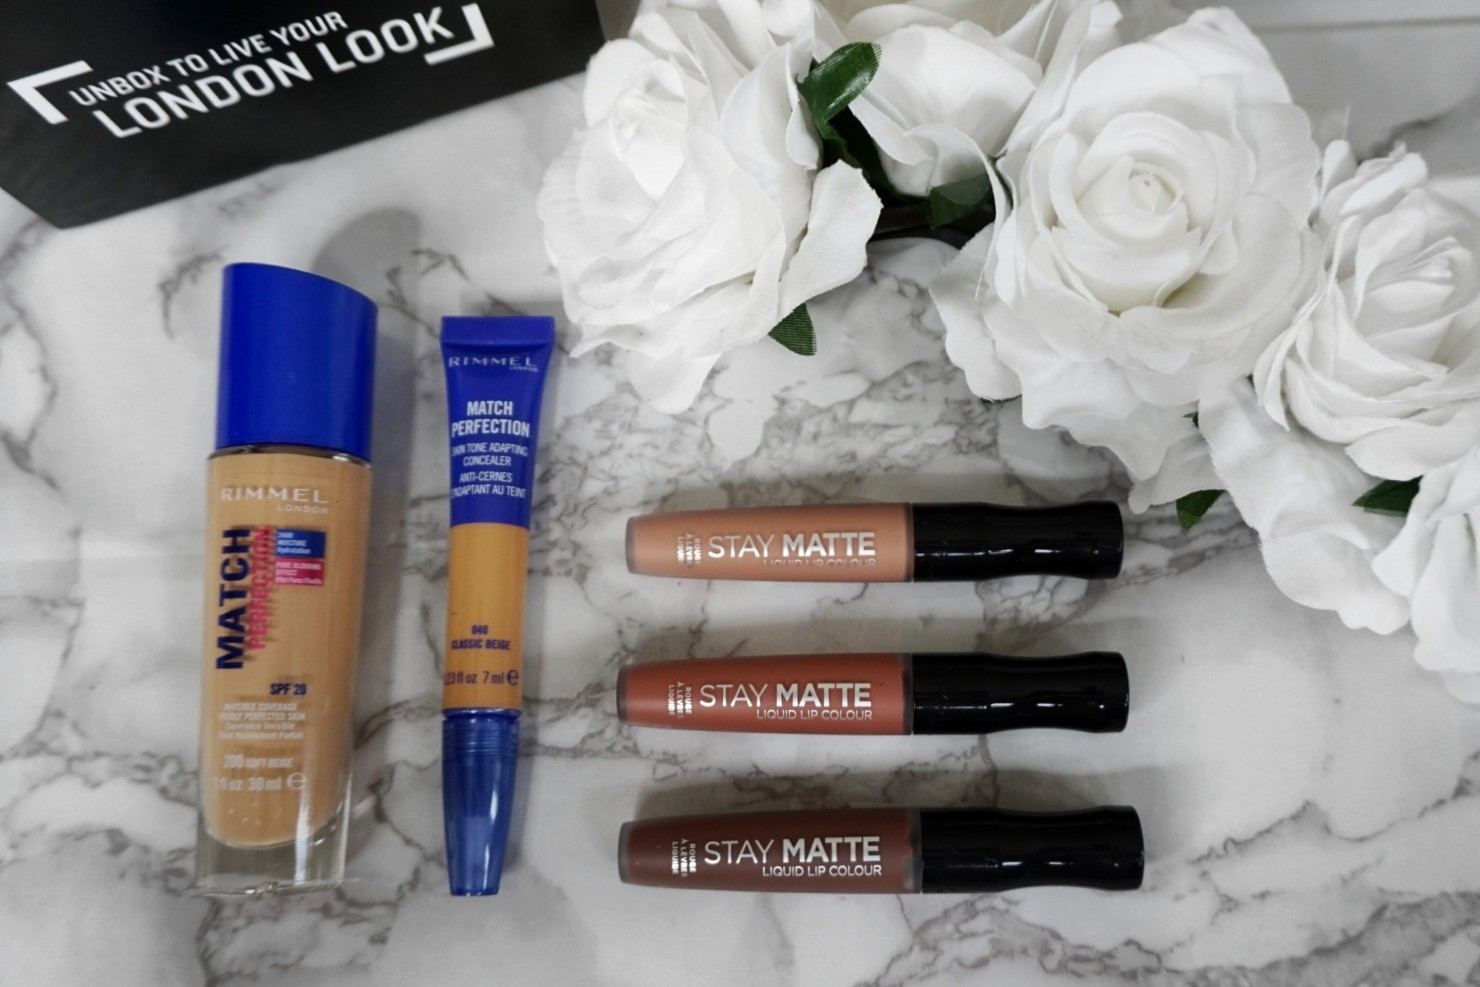 GET THE LOVE ISLAND LOOK WITH THE MATCH PERFECTION FOUNDATION, CONCEALER AND STAY MATTE LIQUID LIP COLOUR COLLECTION BY RIMMEL LONDON